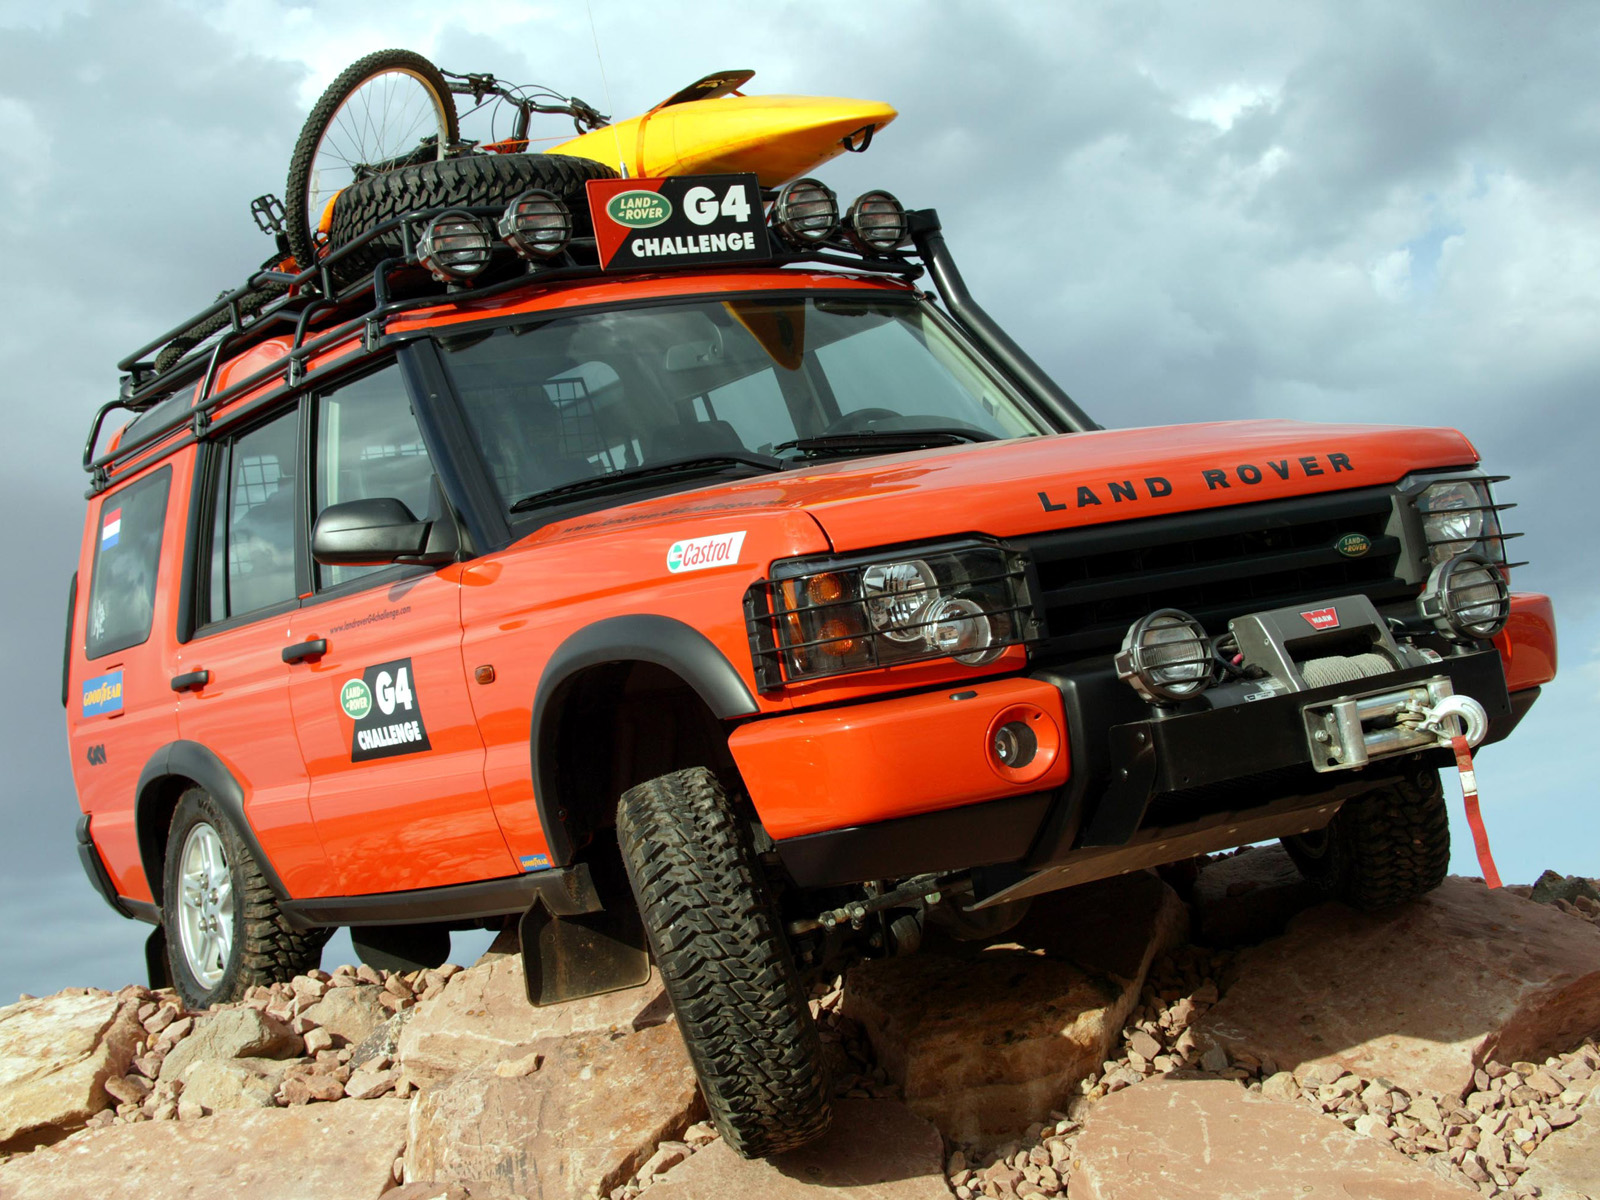 LAND ROVER DISCOVERY 2 G4 red